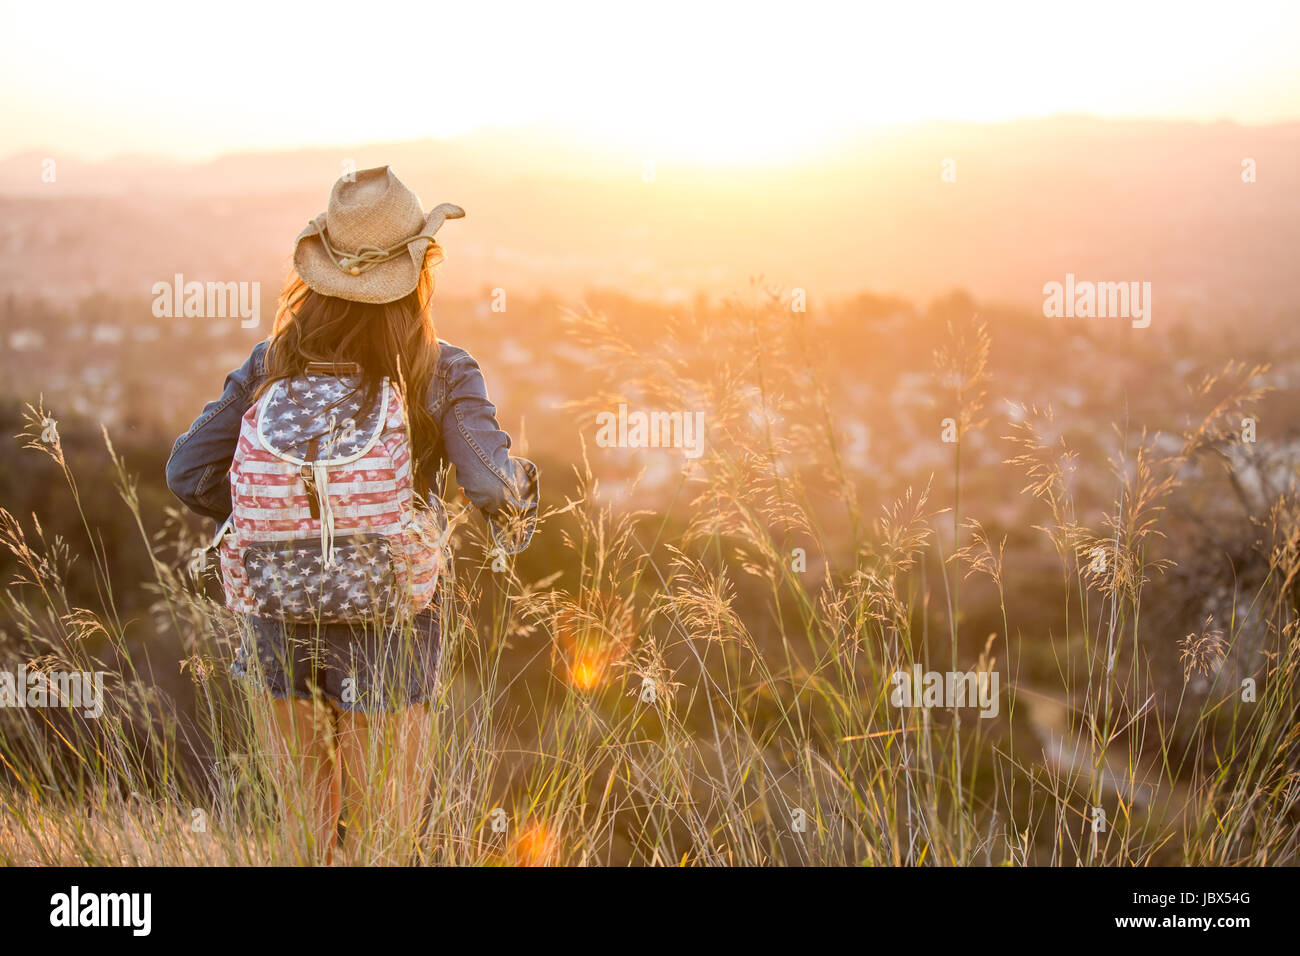 Woman hiking, wearing stars and stripes backpack, rear view - Stock Image